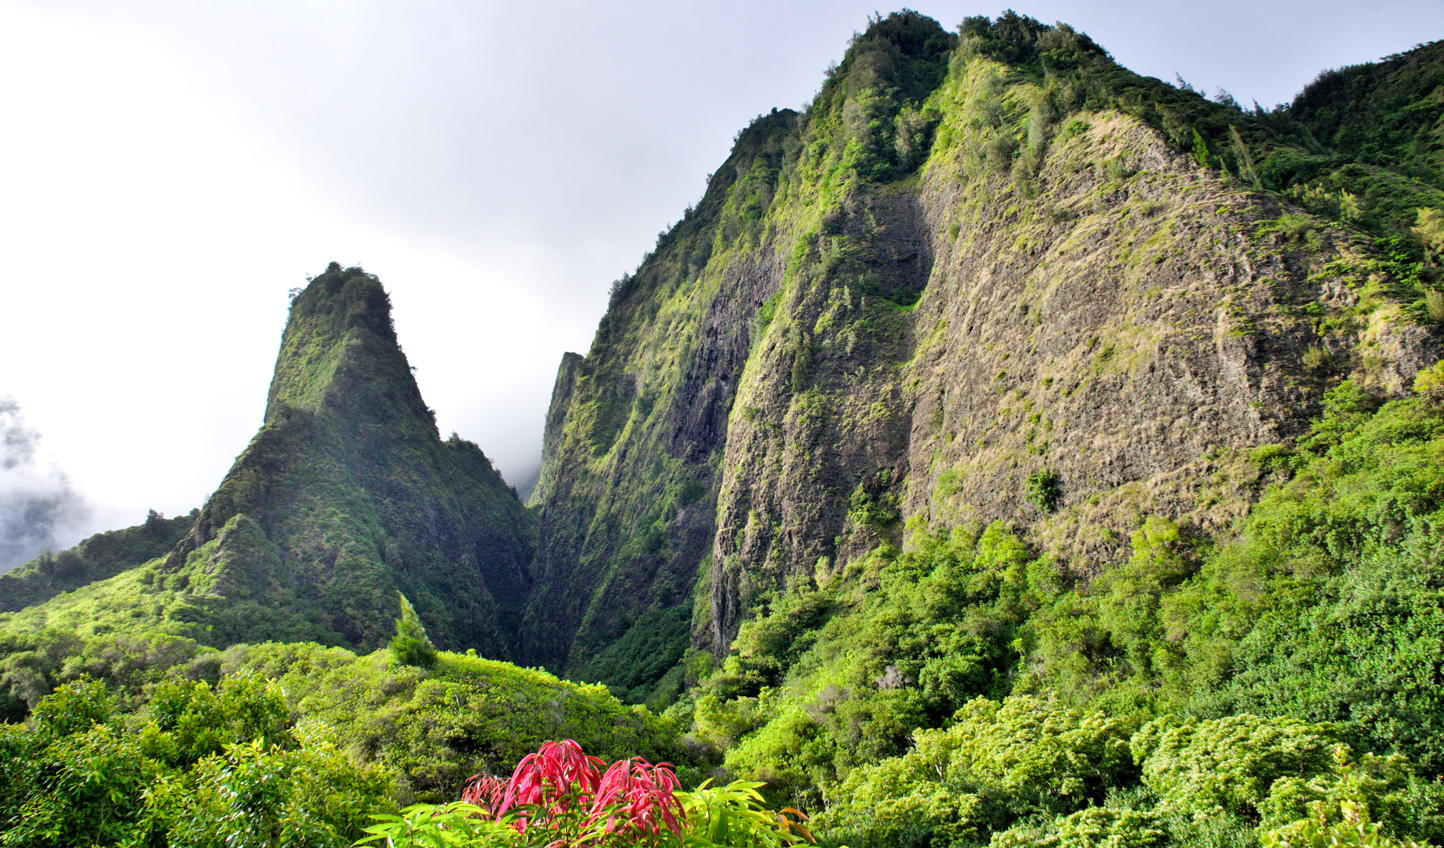 End your trip hiking through the natural beauty of the Iao Valley